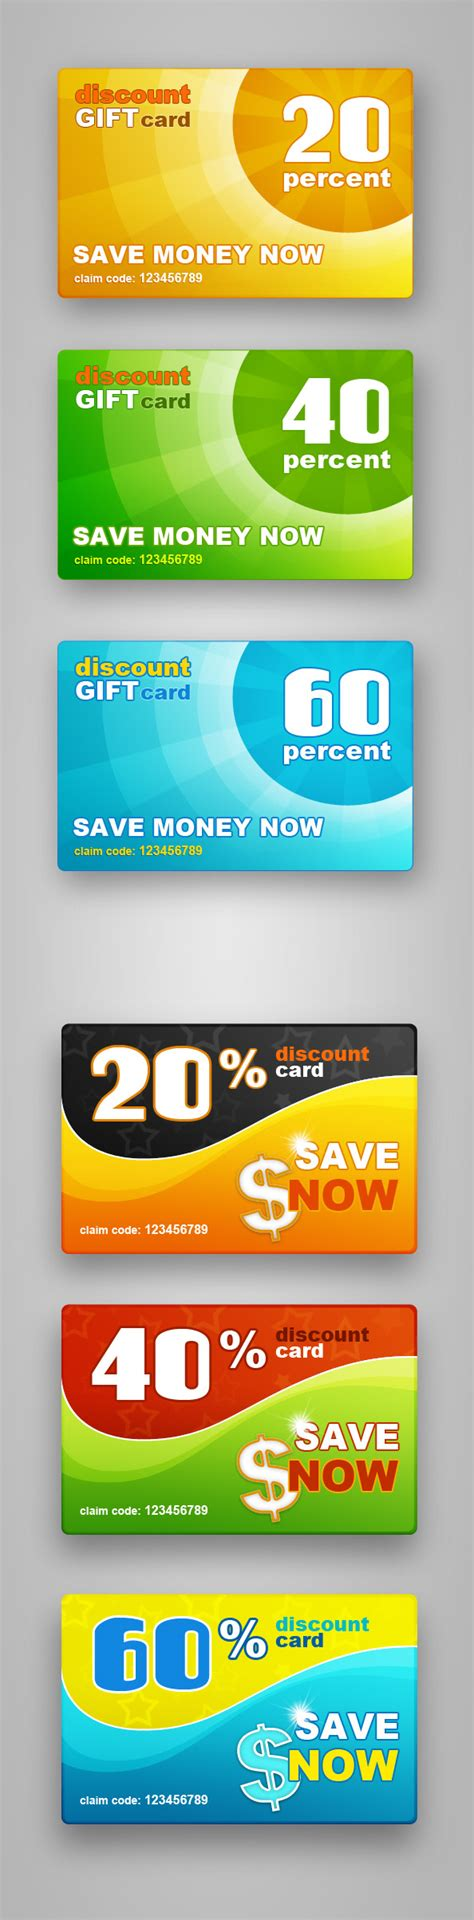 Discount On Starbucks Gift Card - why do i need to make money discount gift cards starbucks make money to take surveys